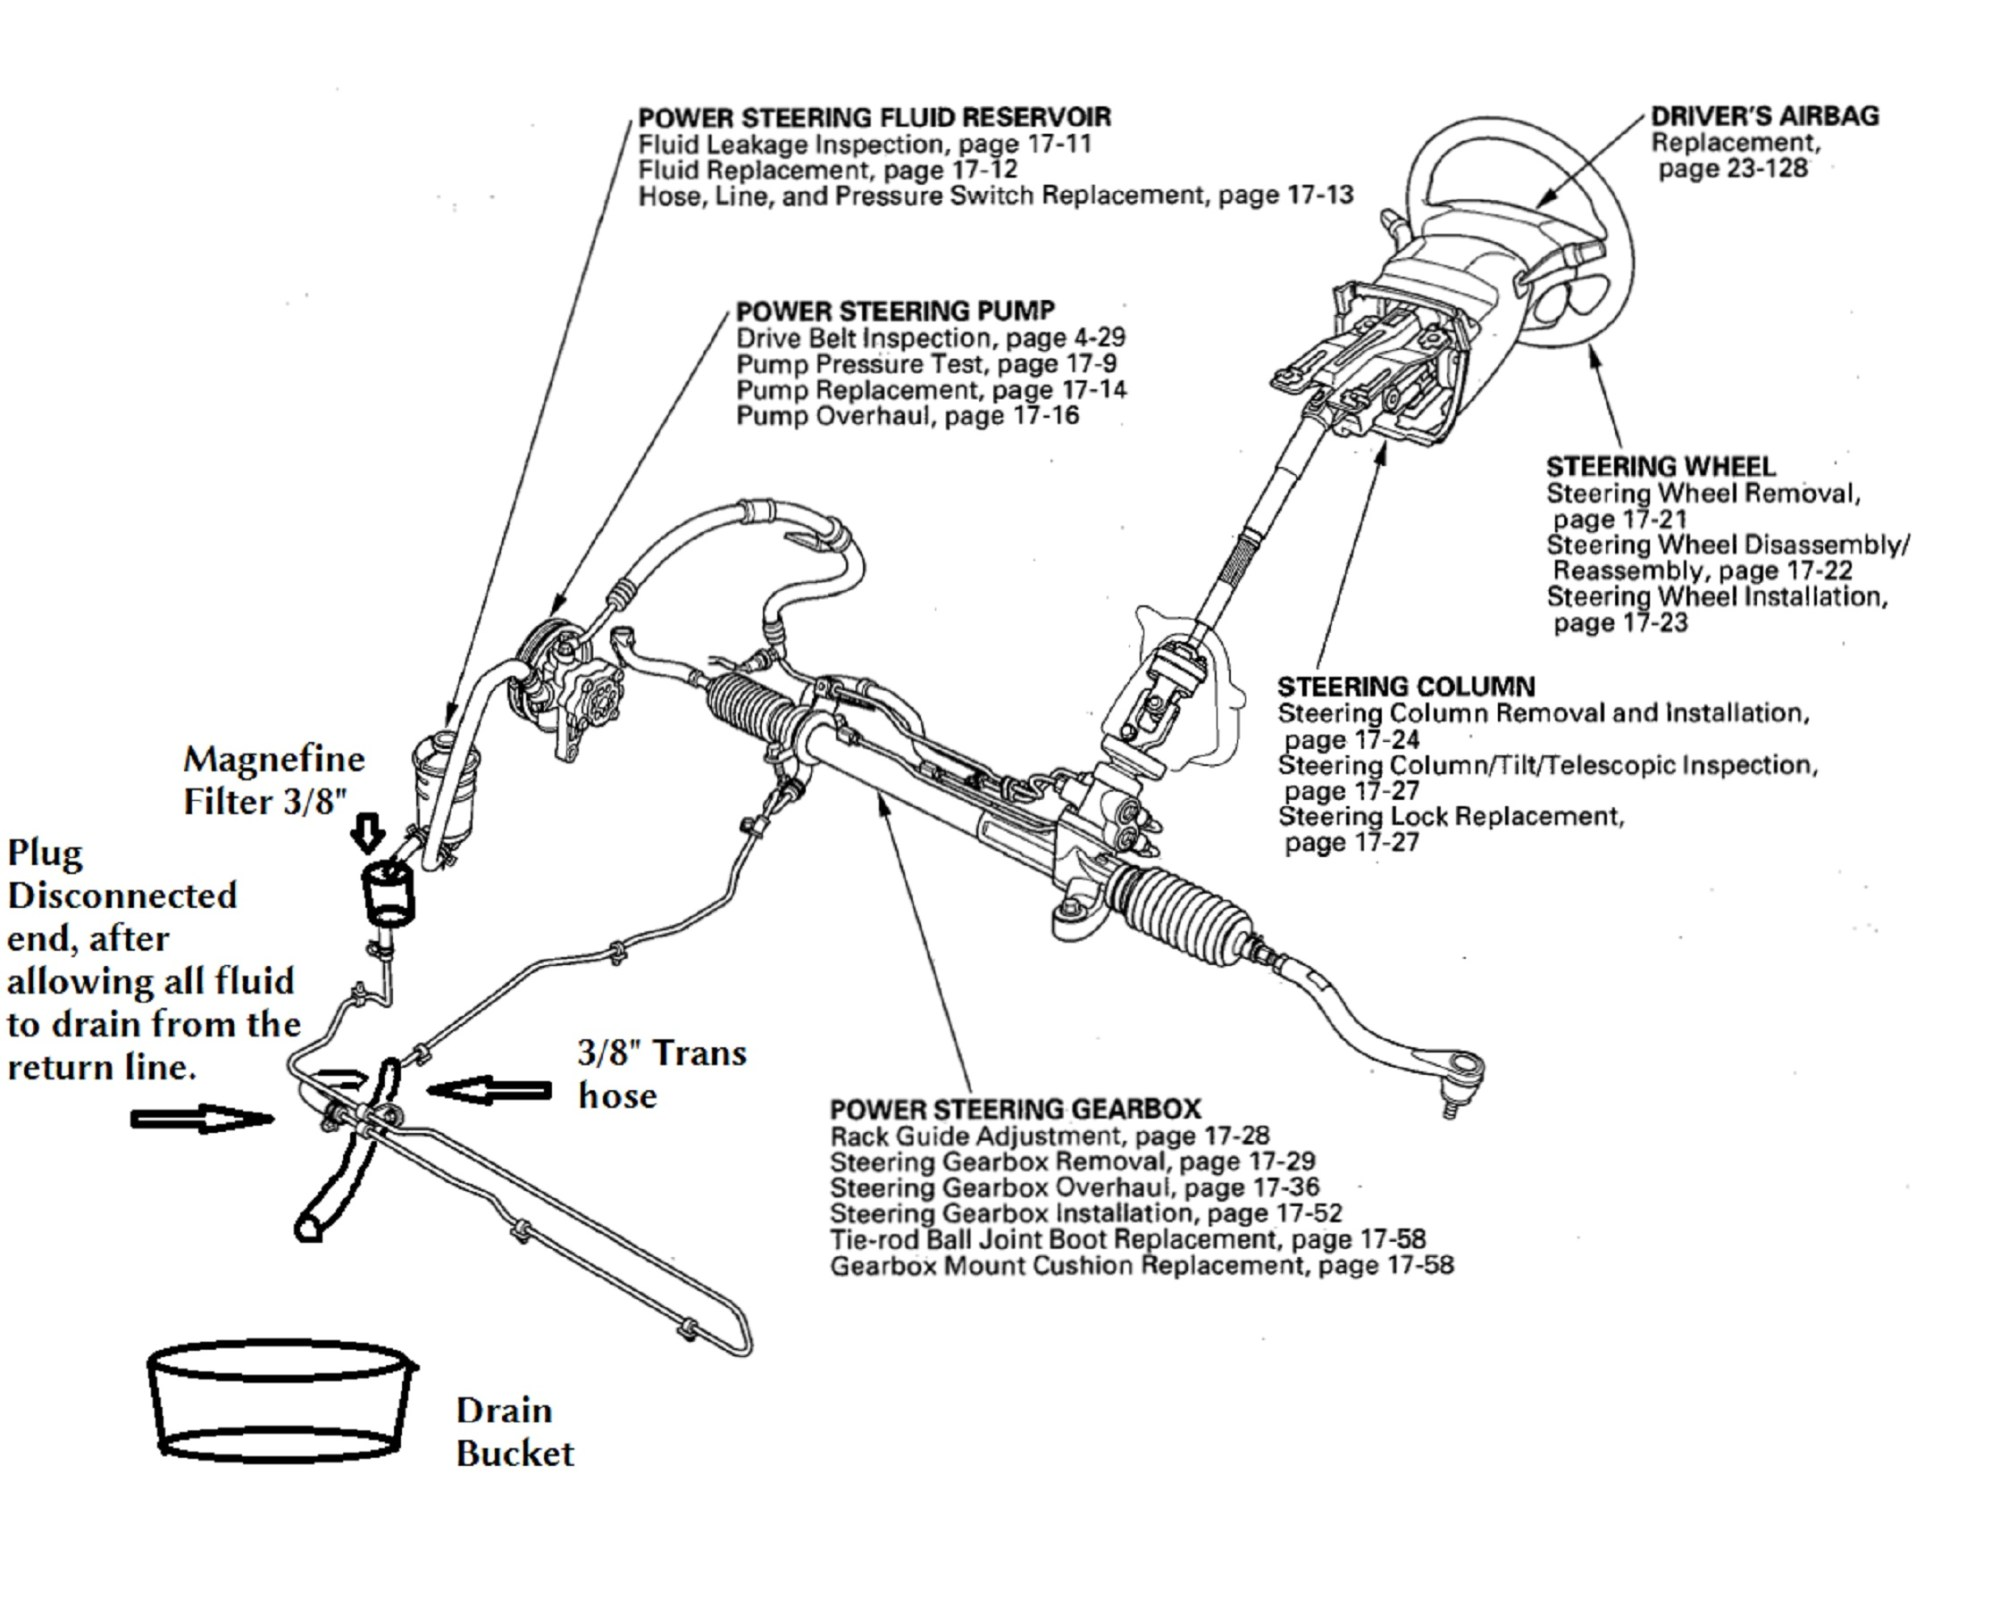 hight resolution of tl engine diagram 2003 acura mdx power steering diagram 2001 acura 2003 acura mdx power steering diagram in addition 2001 acura mdx